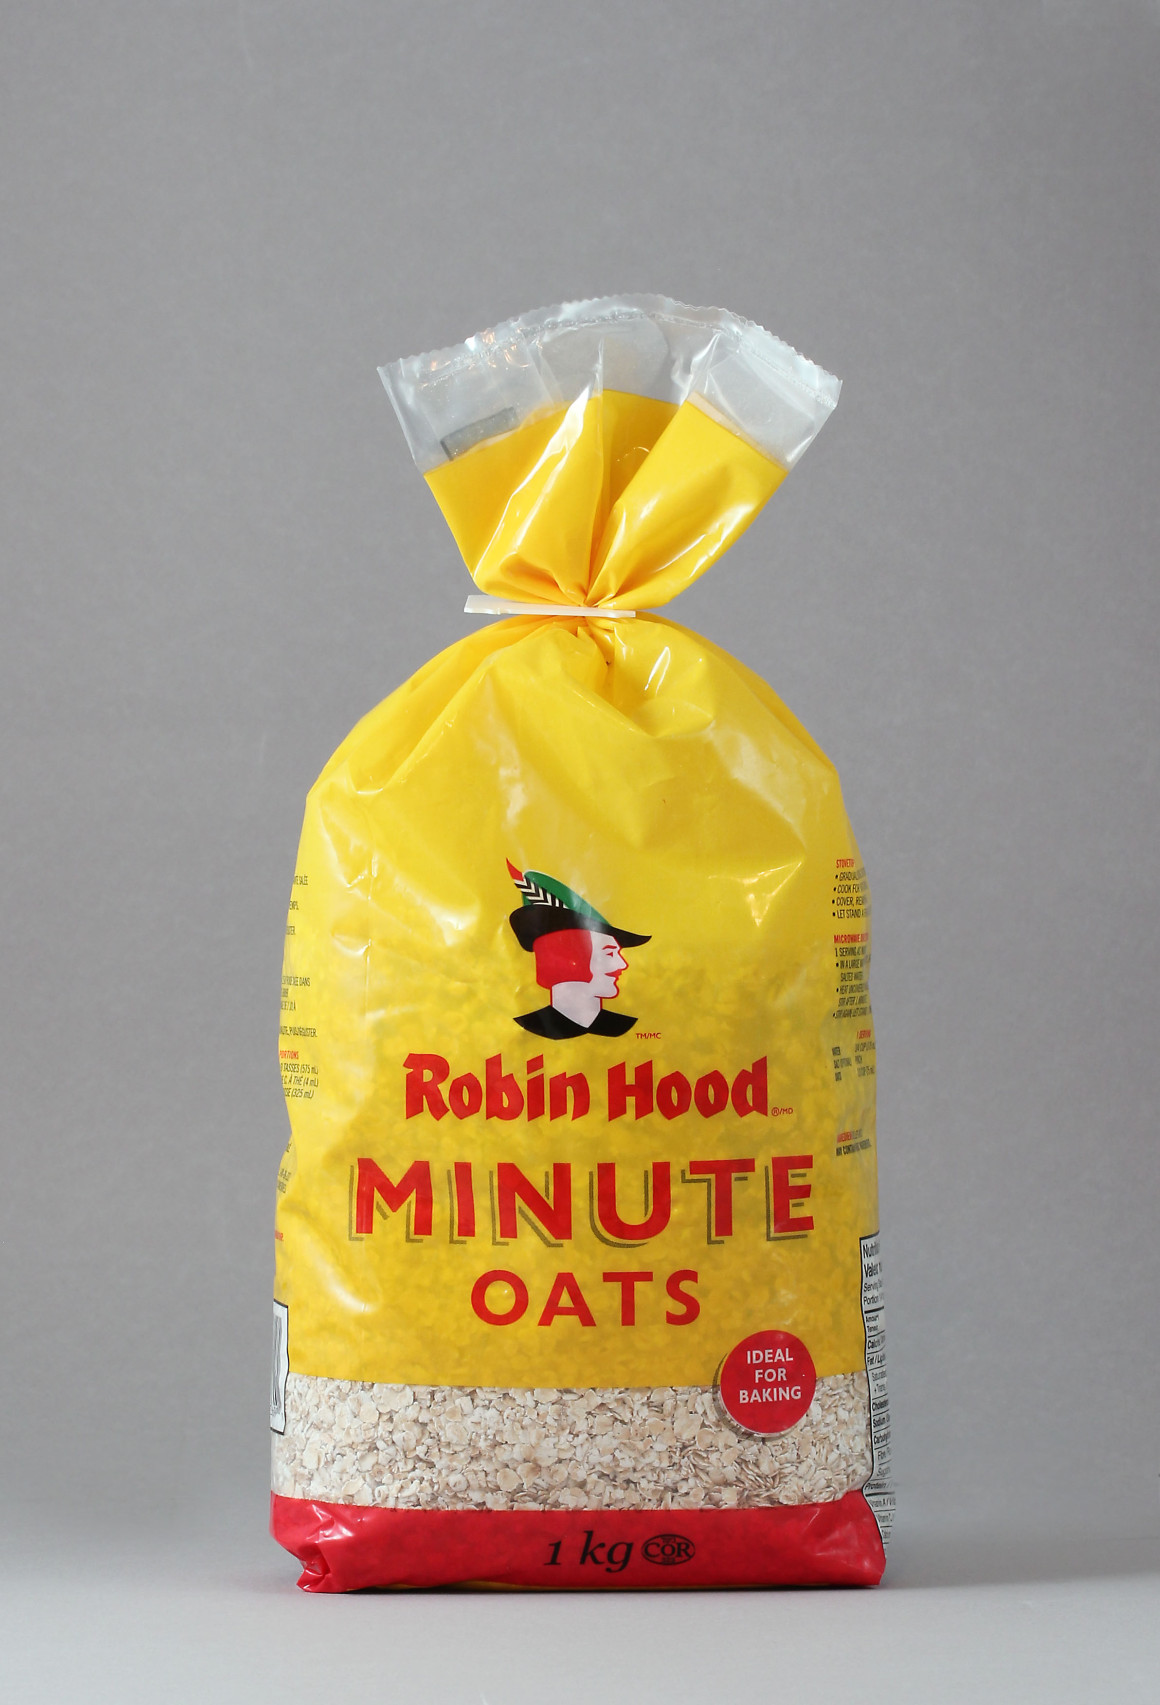 Robin Hood Oats package design – Luke Despatie and The Design Firm